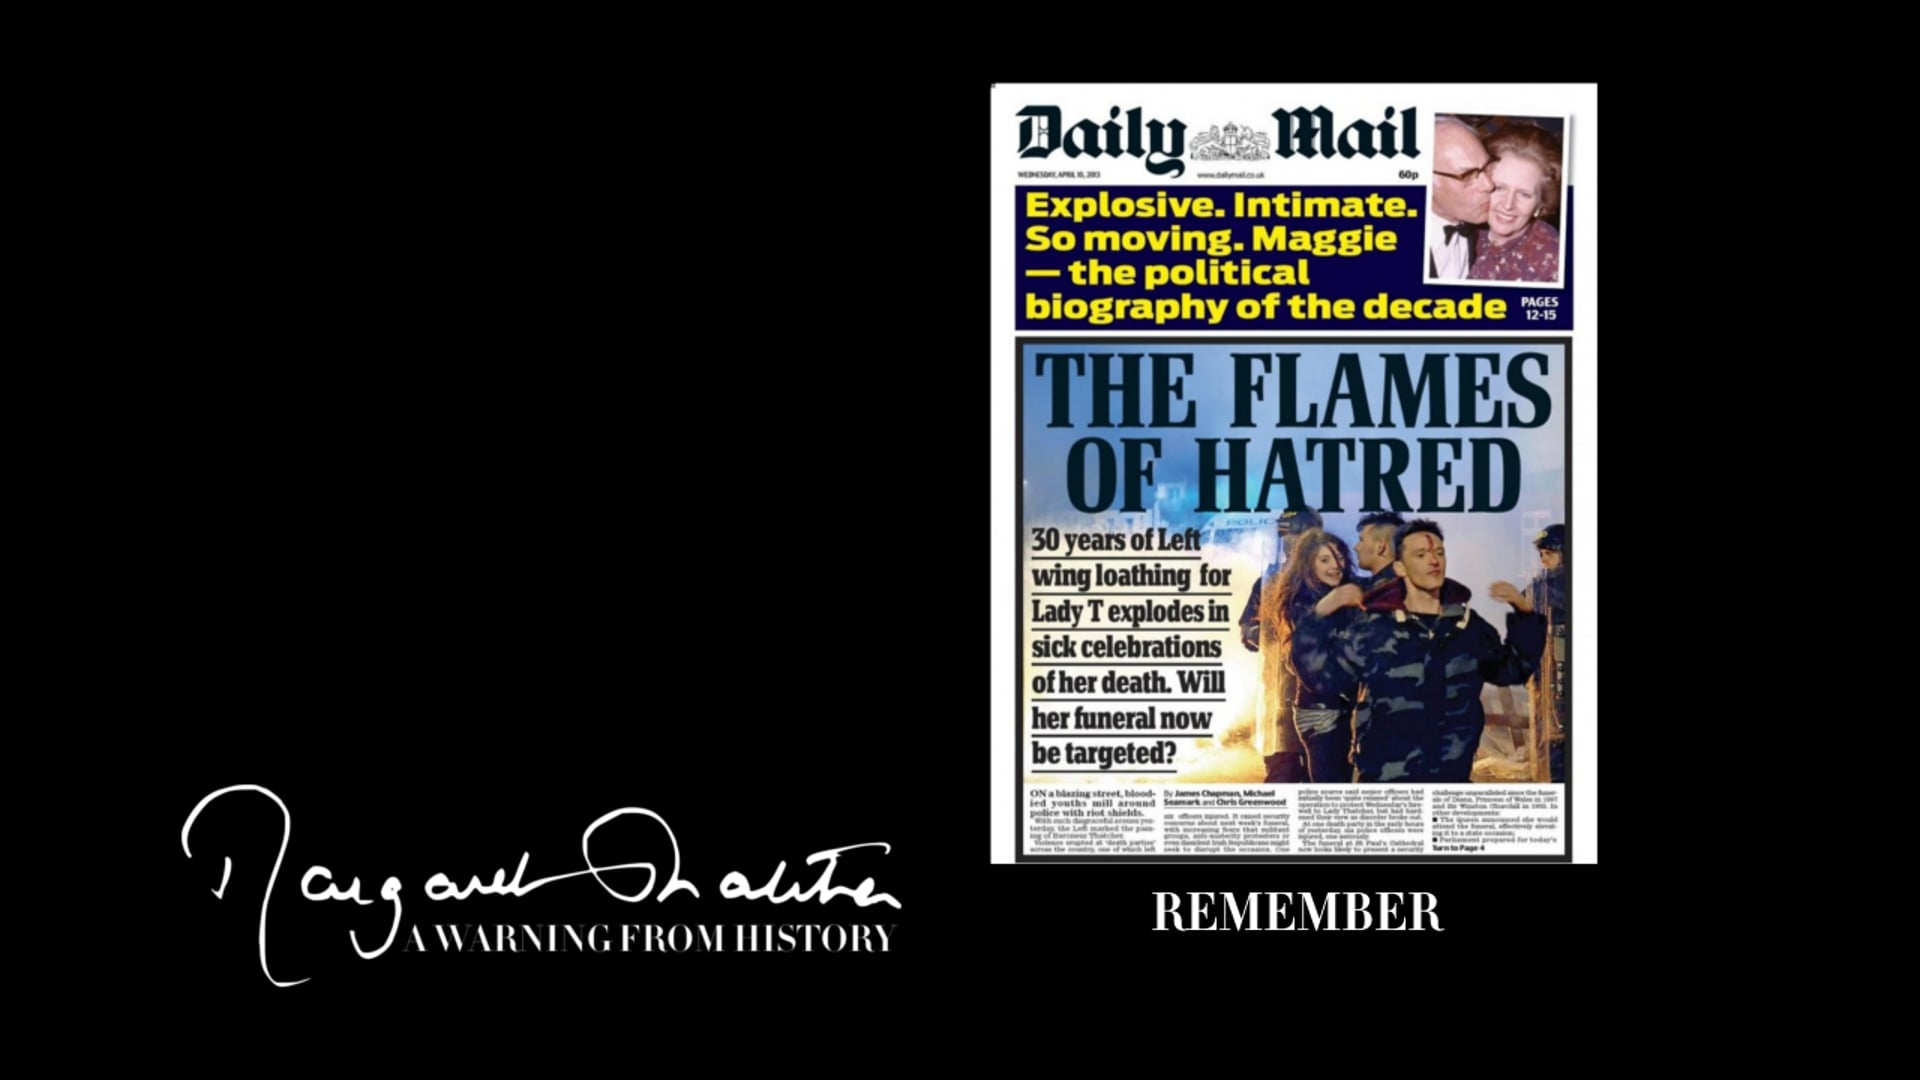 Margaret Thatcher: A Warning from History (Episode 12)